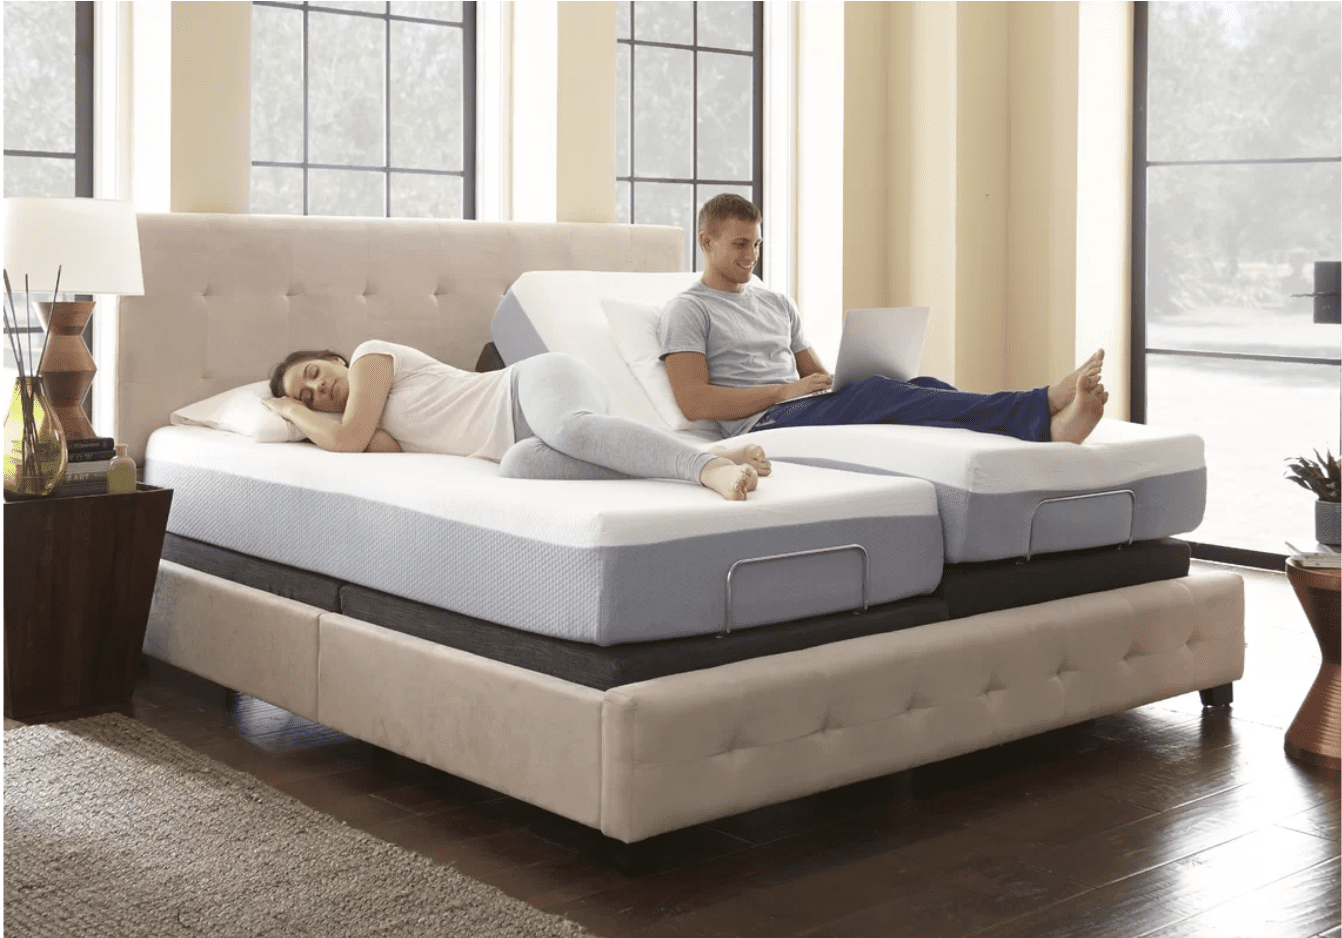 The 7 Best Adjustable Beds of 2019